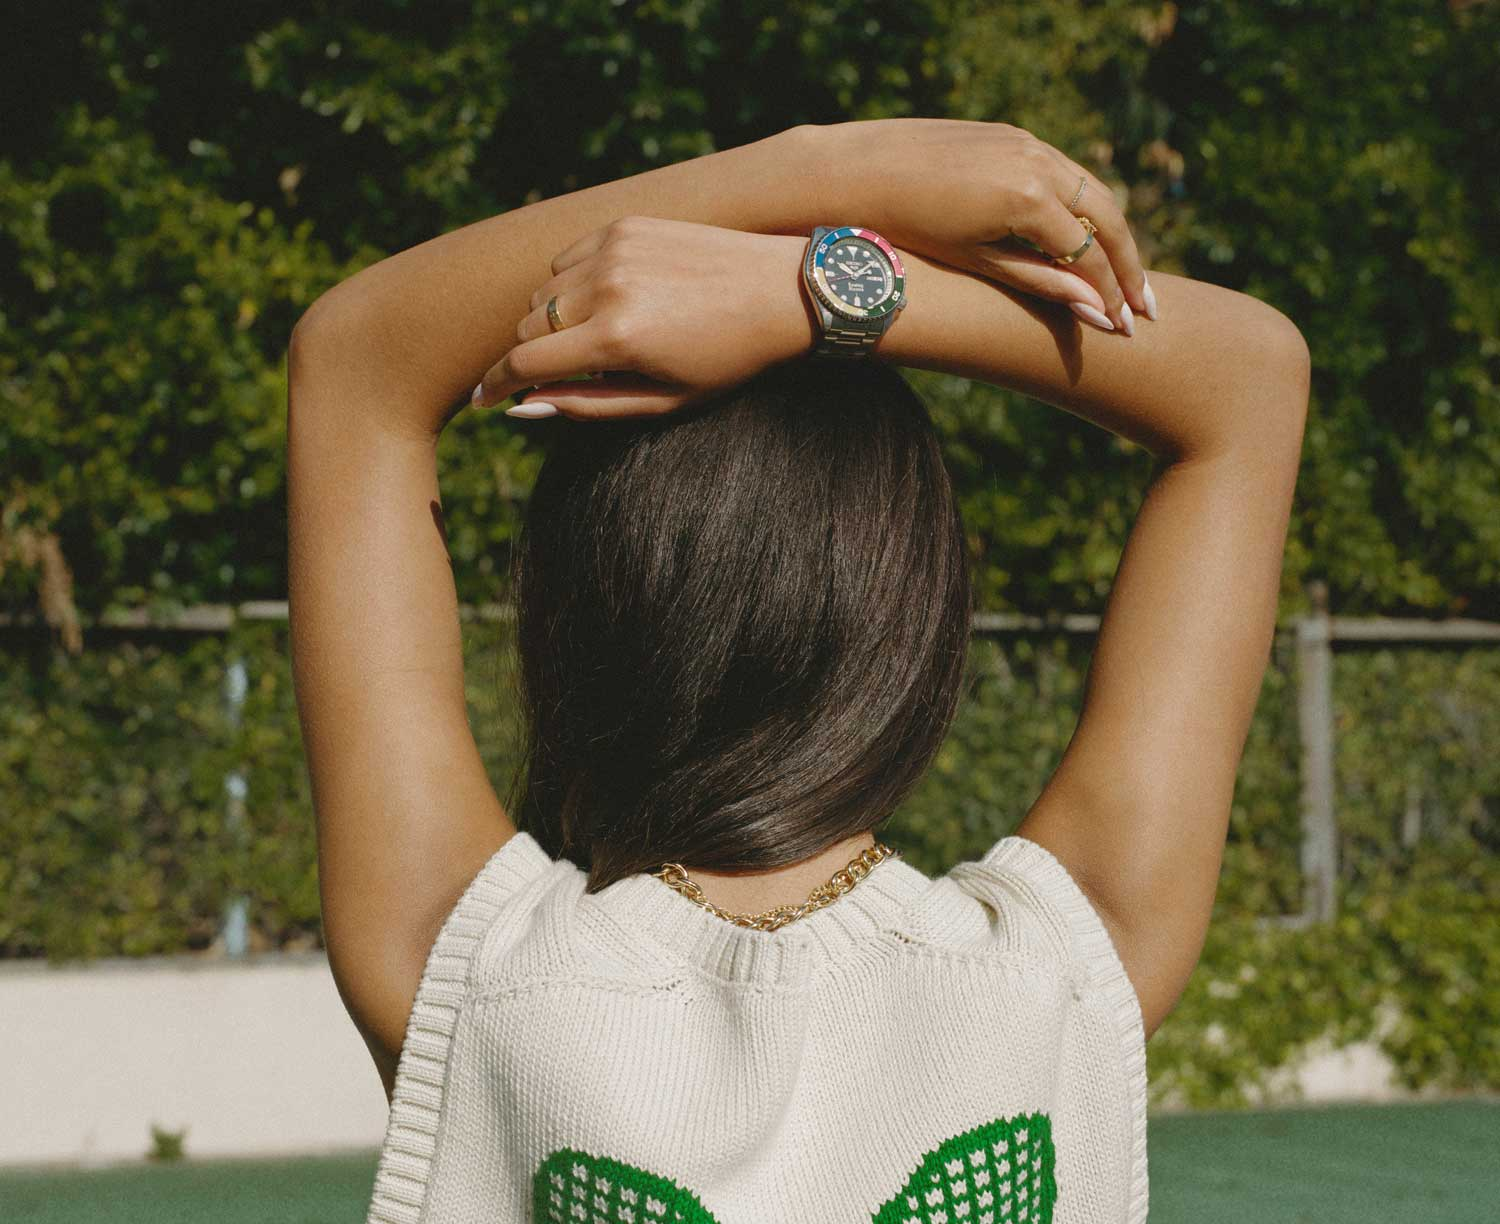 Rowing Blazers Summer 2021 campaign features the new watches brought out as part of its collaboration with Seiko.